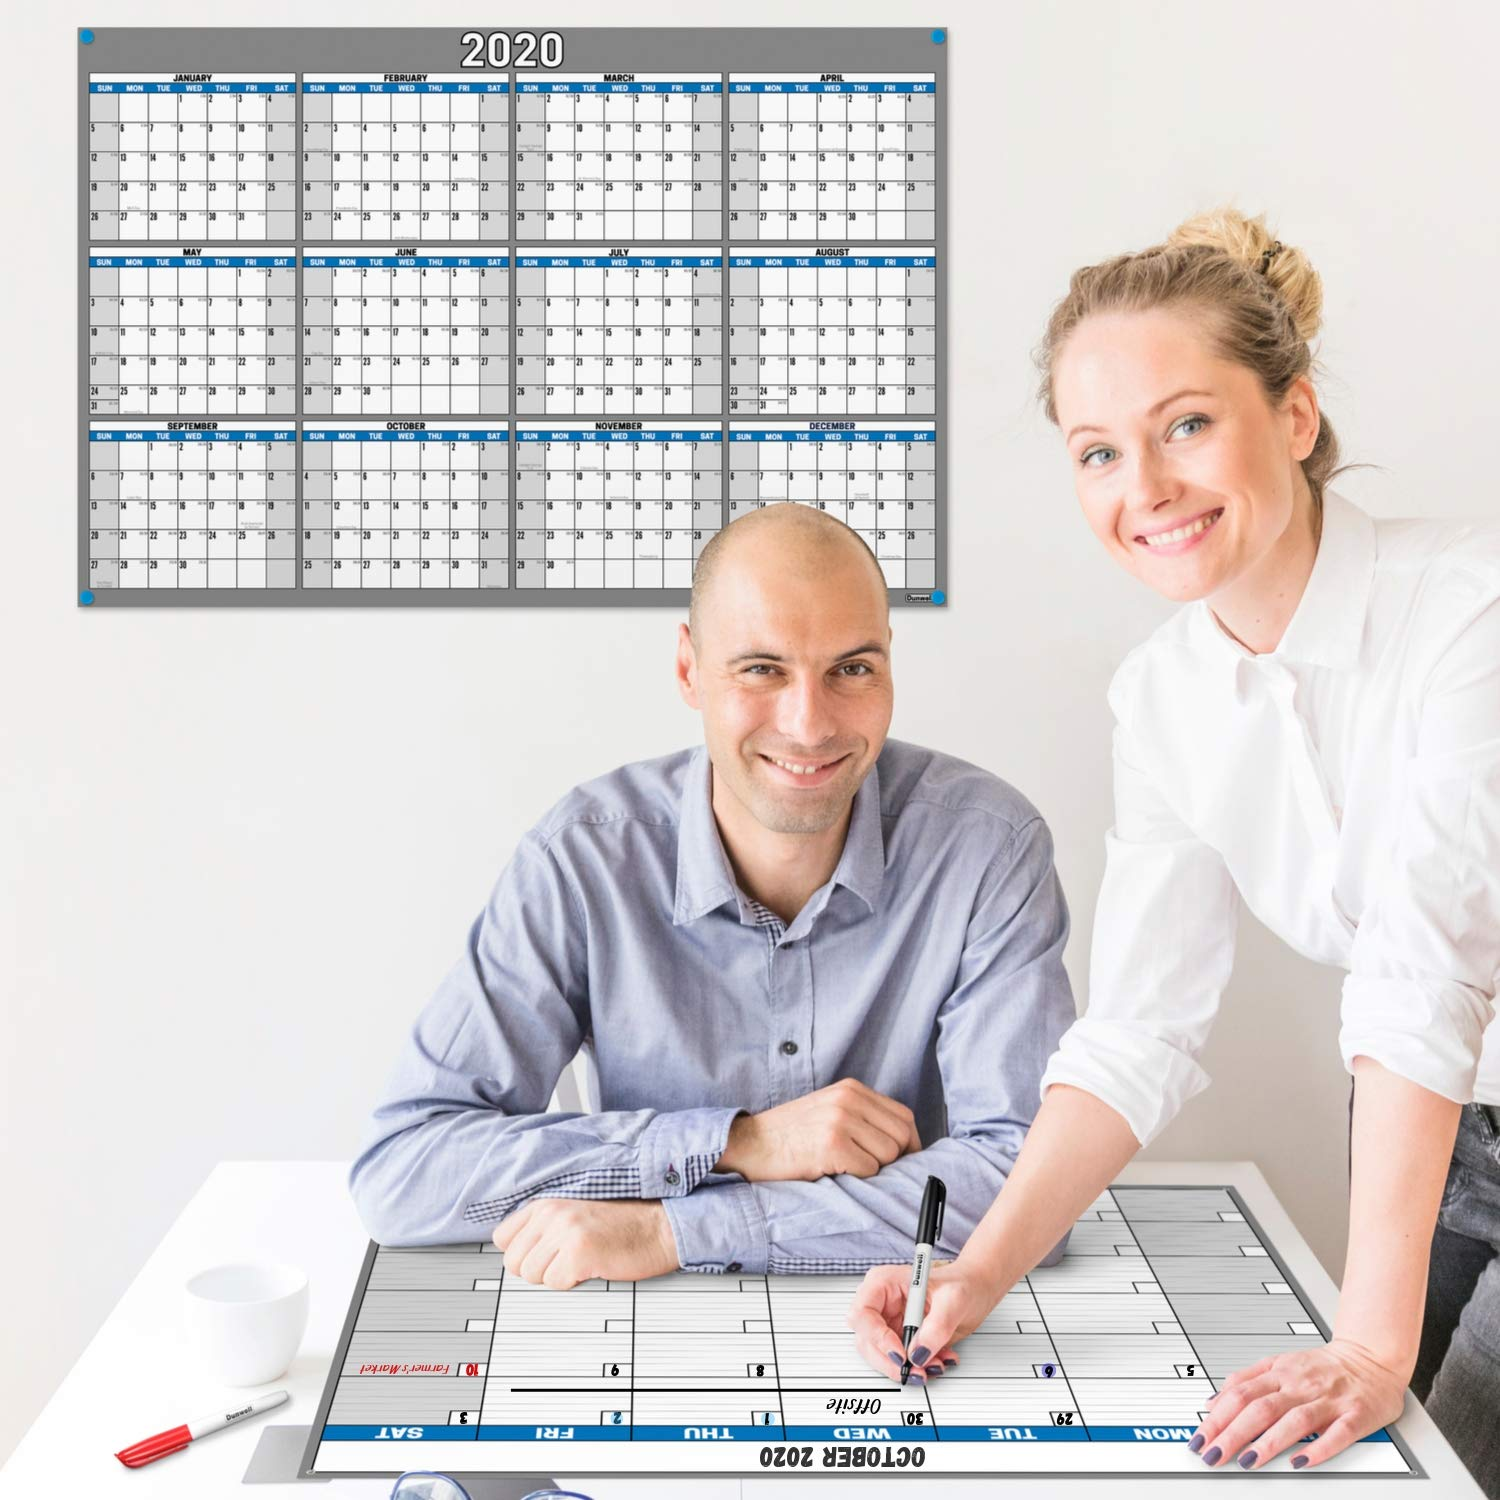 24x36 Erasable Undated Monthly Weekly Planner (Blue) with Bonus 2020 Horizontal Vertical Reversible Large Calendar, Laminated Dry Wet Erase Poster Calendars by Dunwell